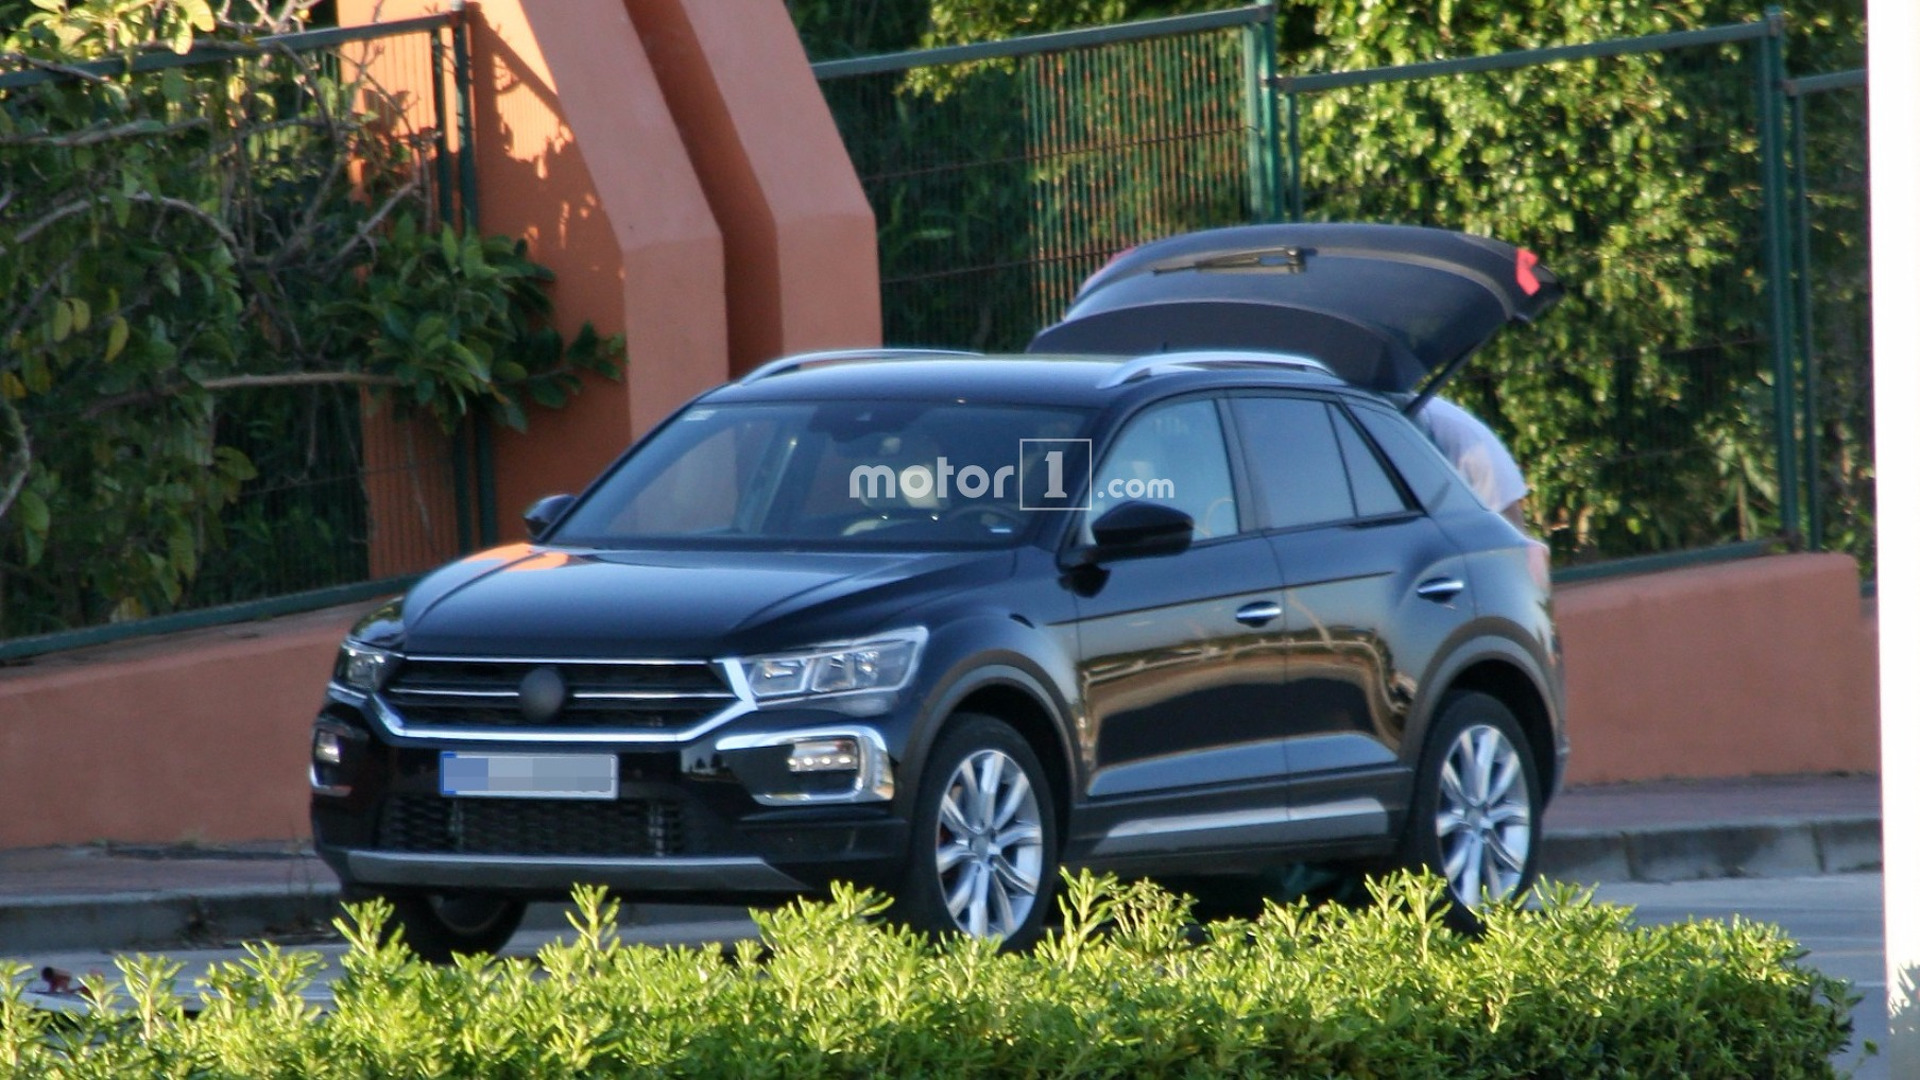 VW Golf SUV Comes As The 2018 VW T-Roc >> Vw T Roc Could Be Brand S First Car With Mild Hybrid System